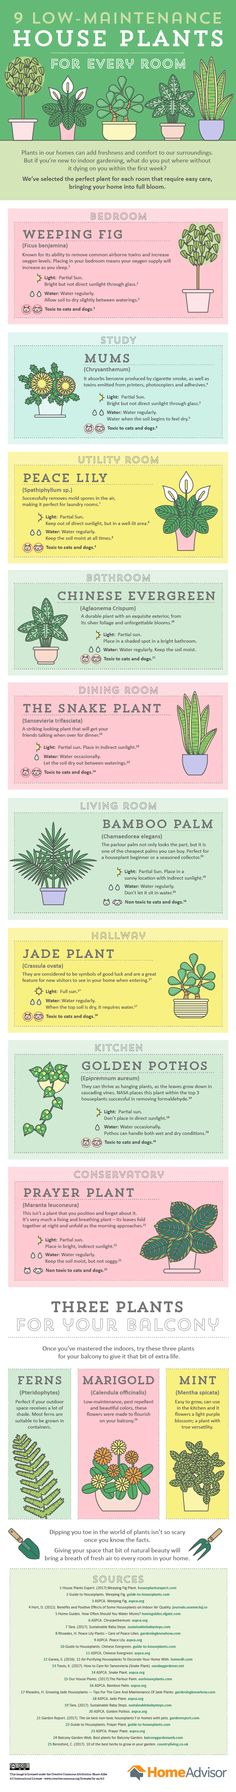 Find the best low-maintenance plant for every room of the home with this handy guide.